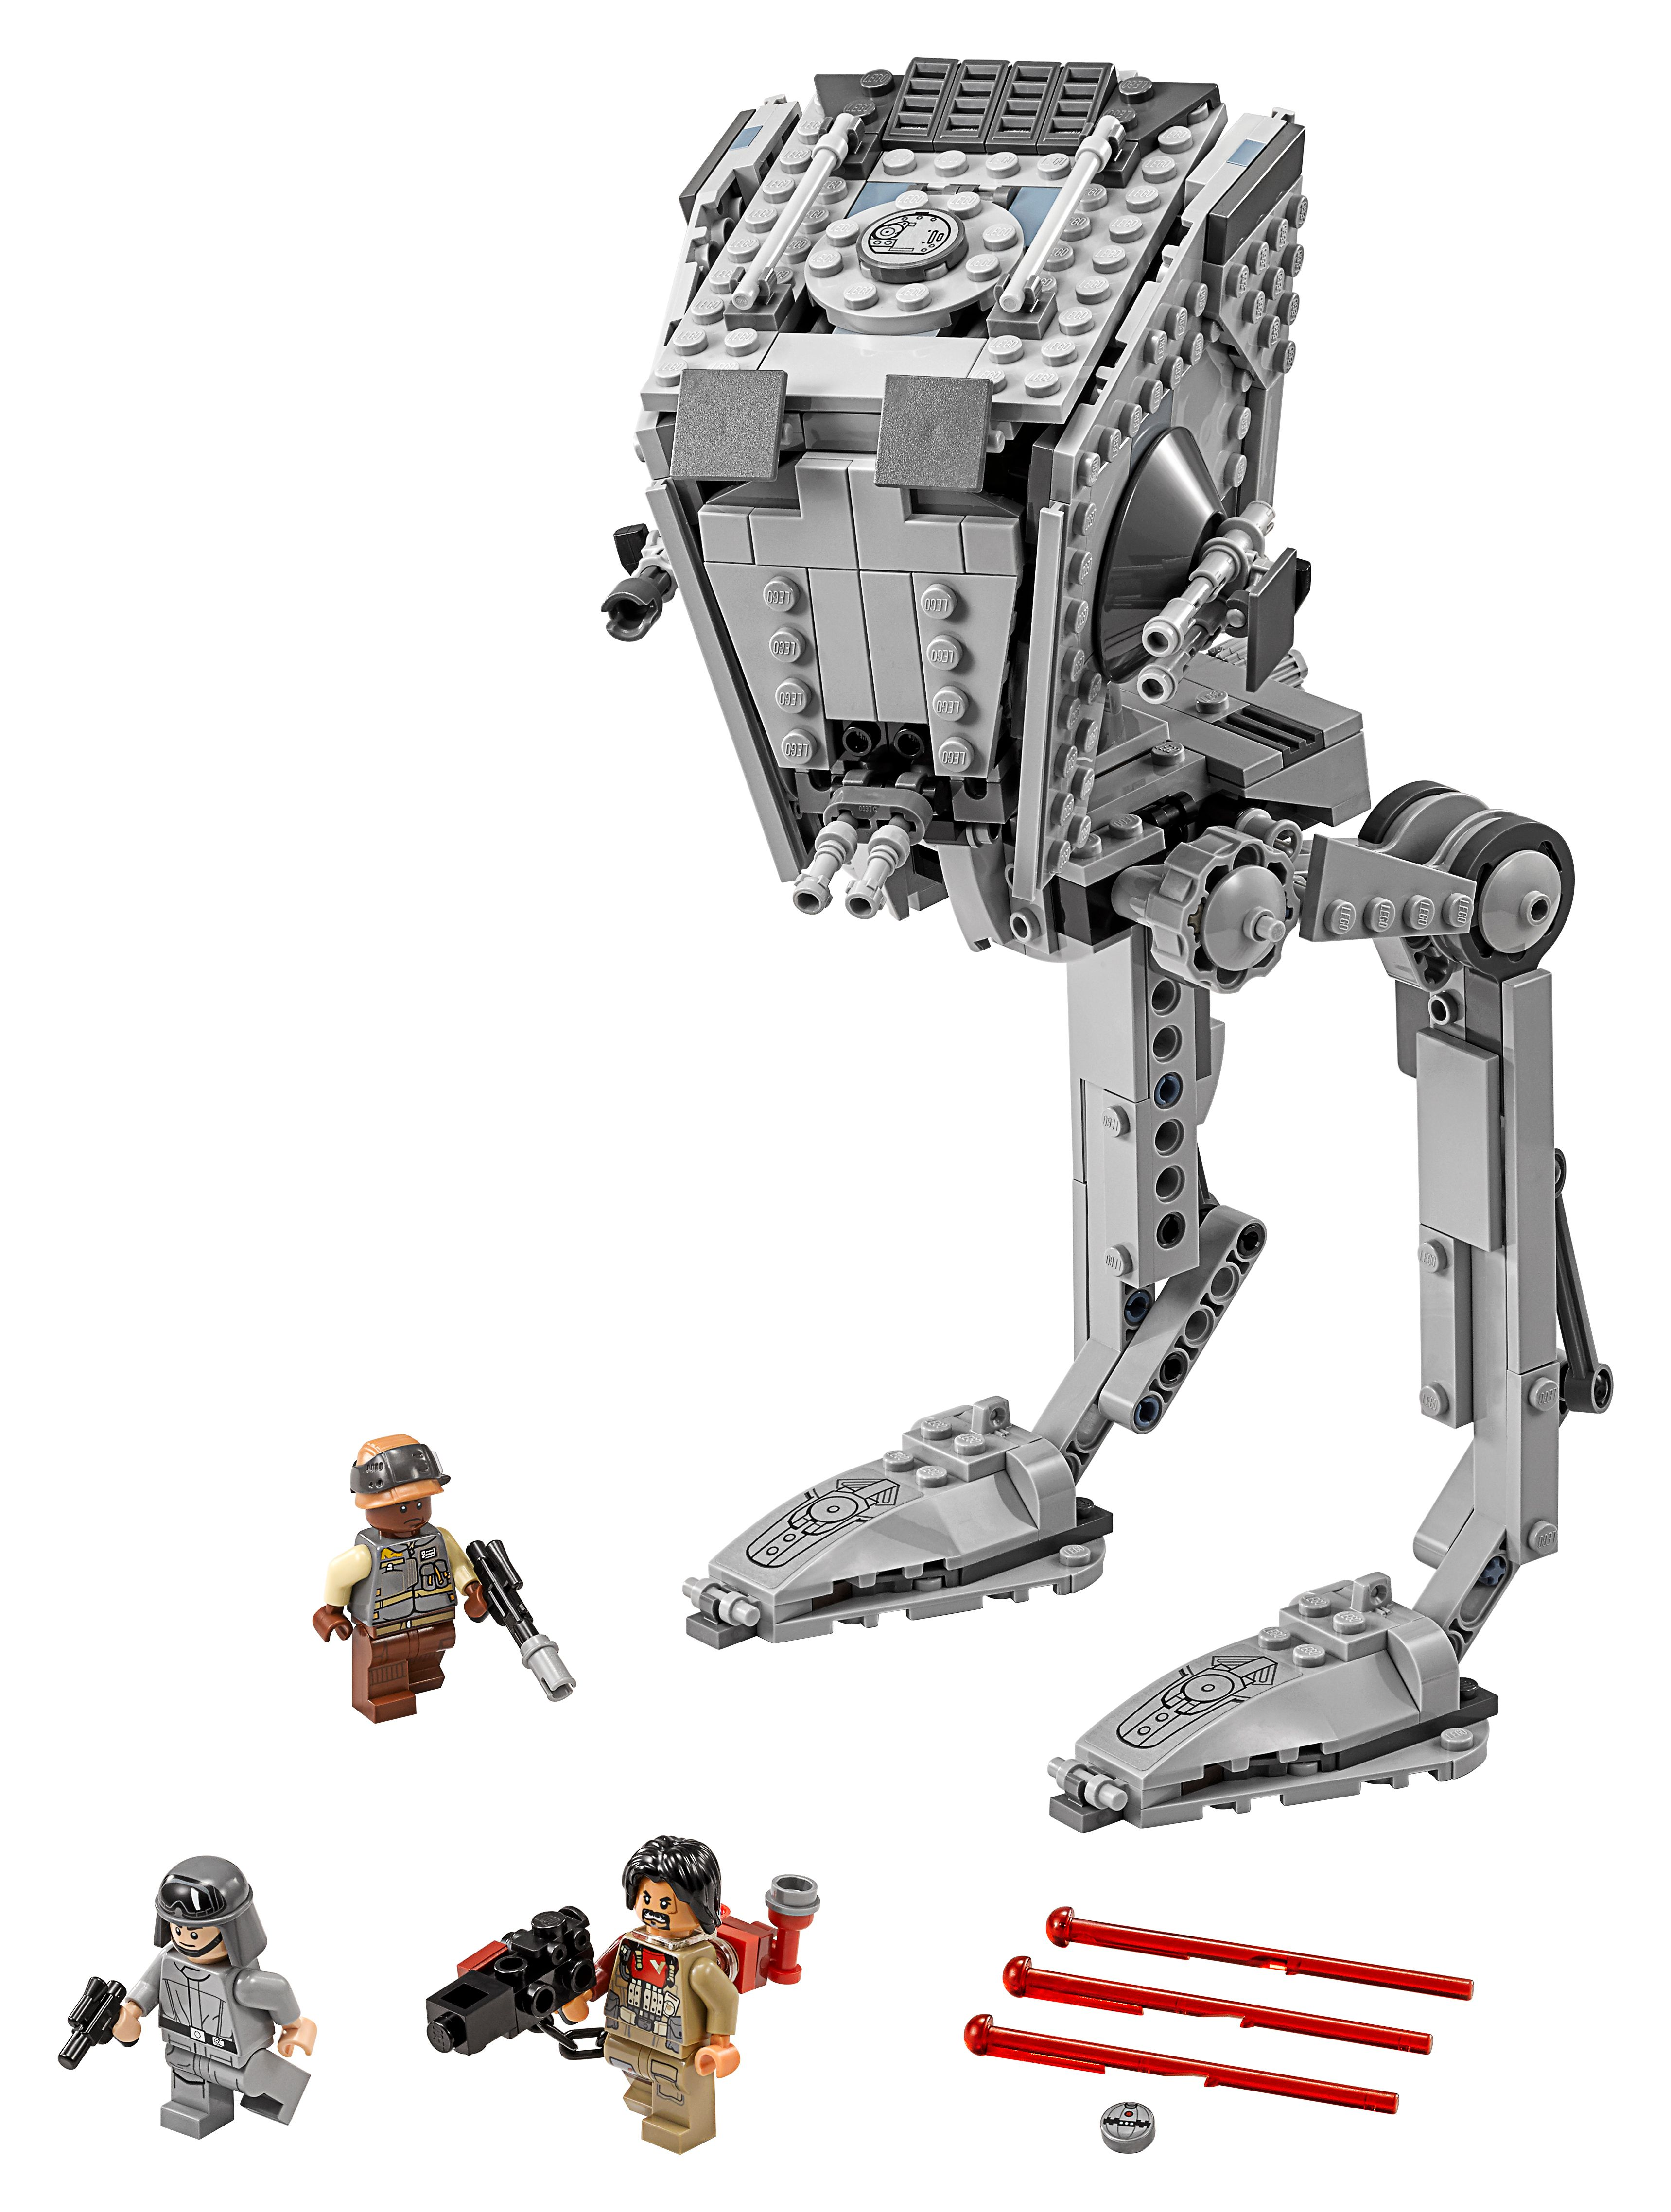 rogue one lego images revealed includes u wing and more. Black Bedroom Furniture Sets. Home Design Ideas